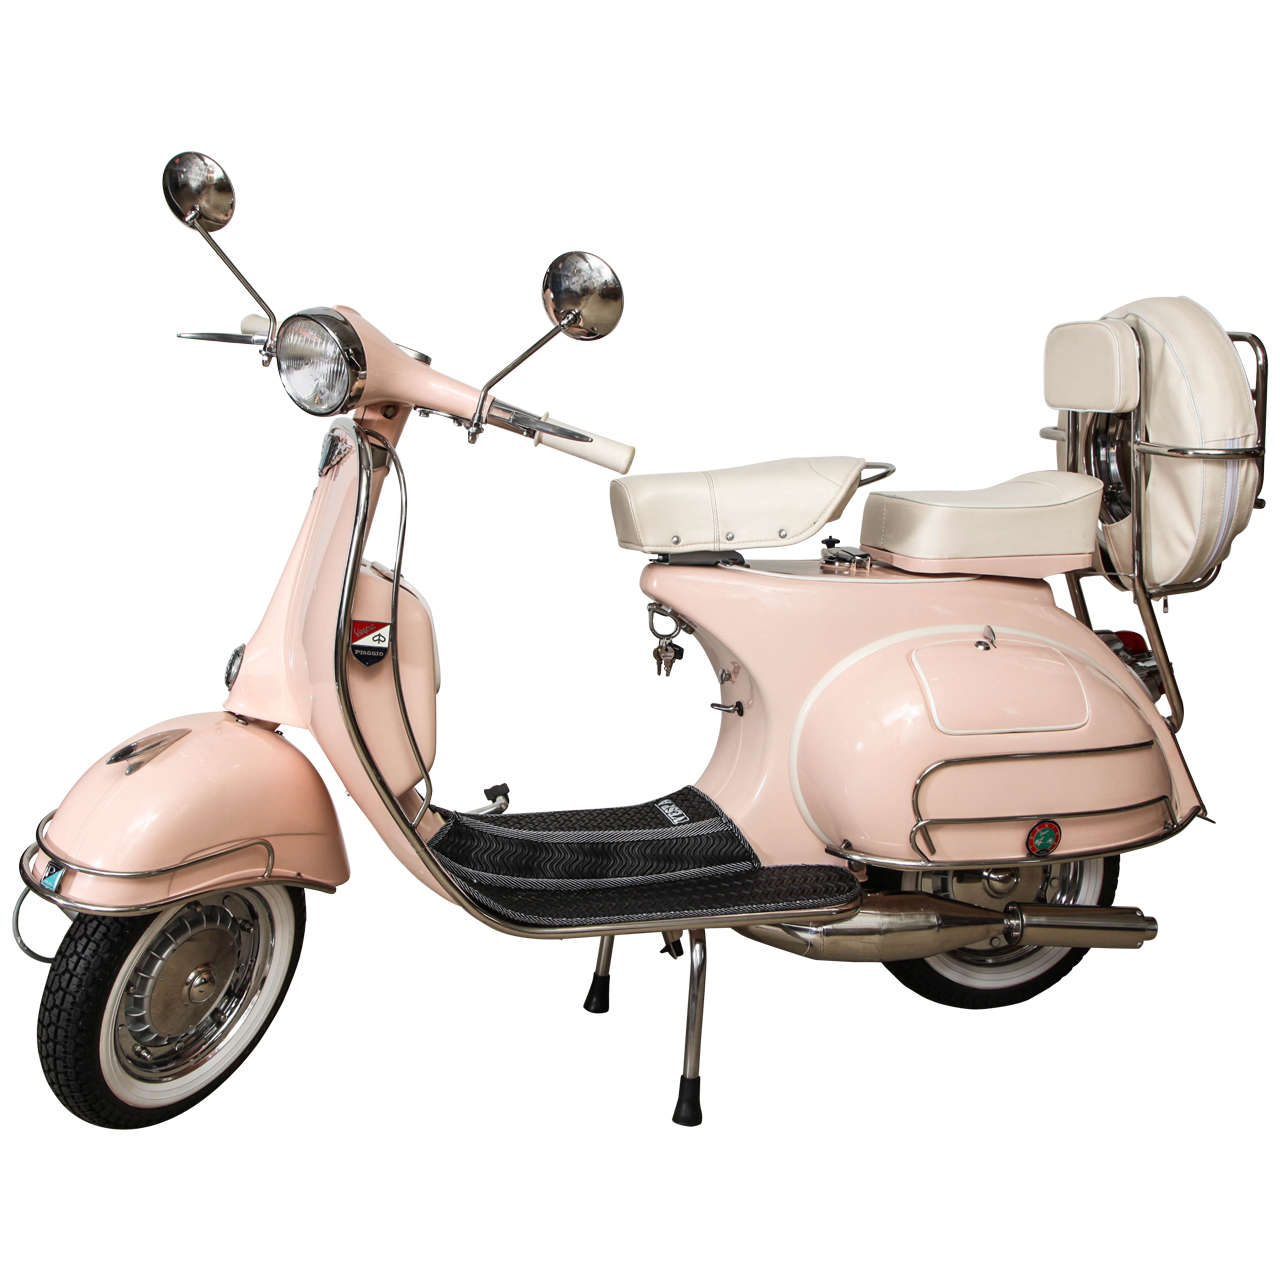 Restoring Antique Leather Fully Restored 1963 Pink With White Leather Vintage Italian